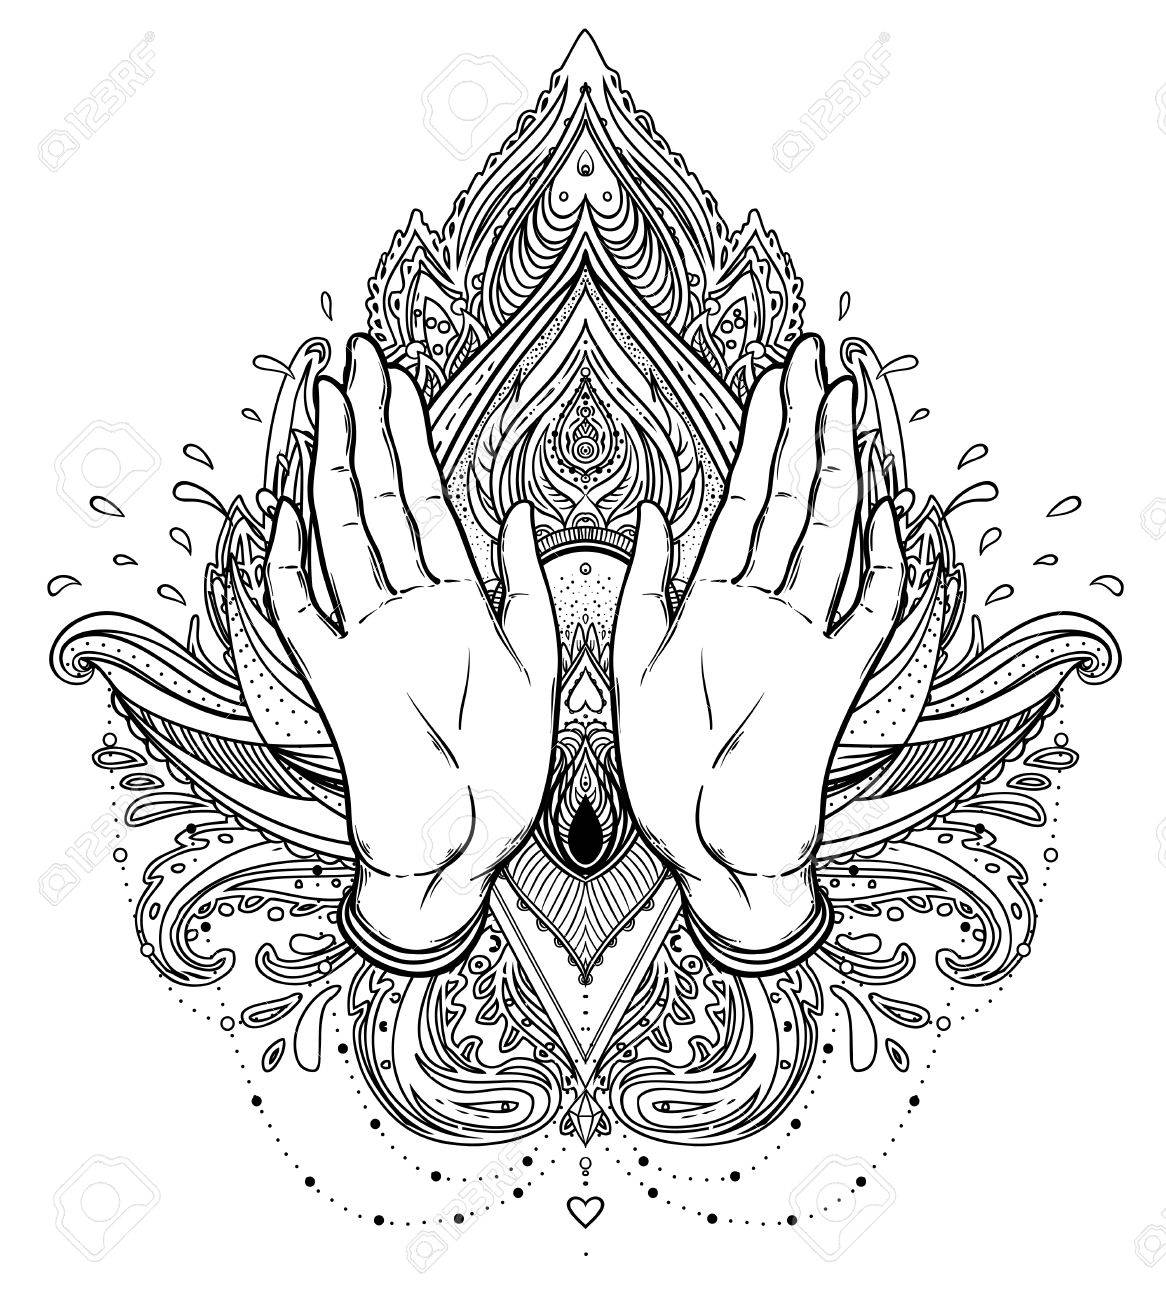 Vector ornamental lotus flower and praying hands patterned indian vector vector ornamental lotus flower and praying hands patterned indian paisley inticate illustration invitation element tattoo astrology alchemy mightylinksfo